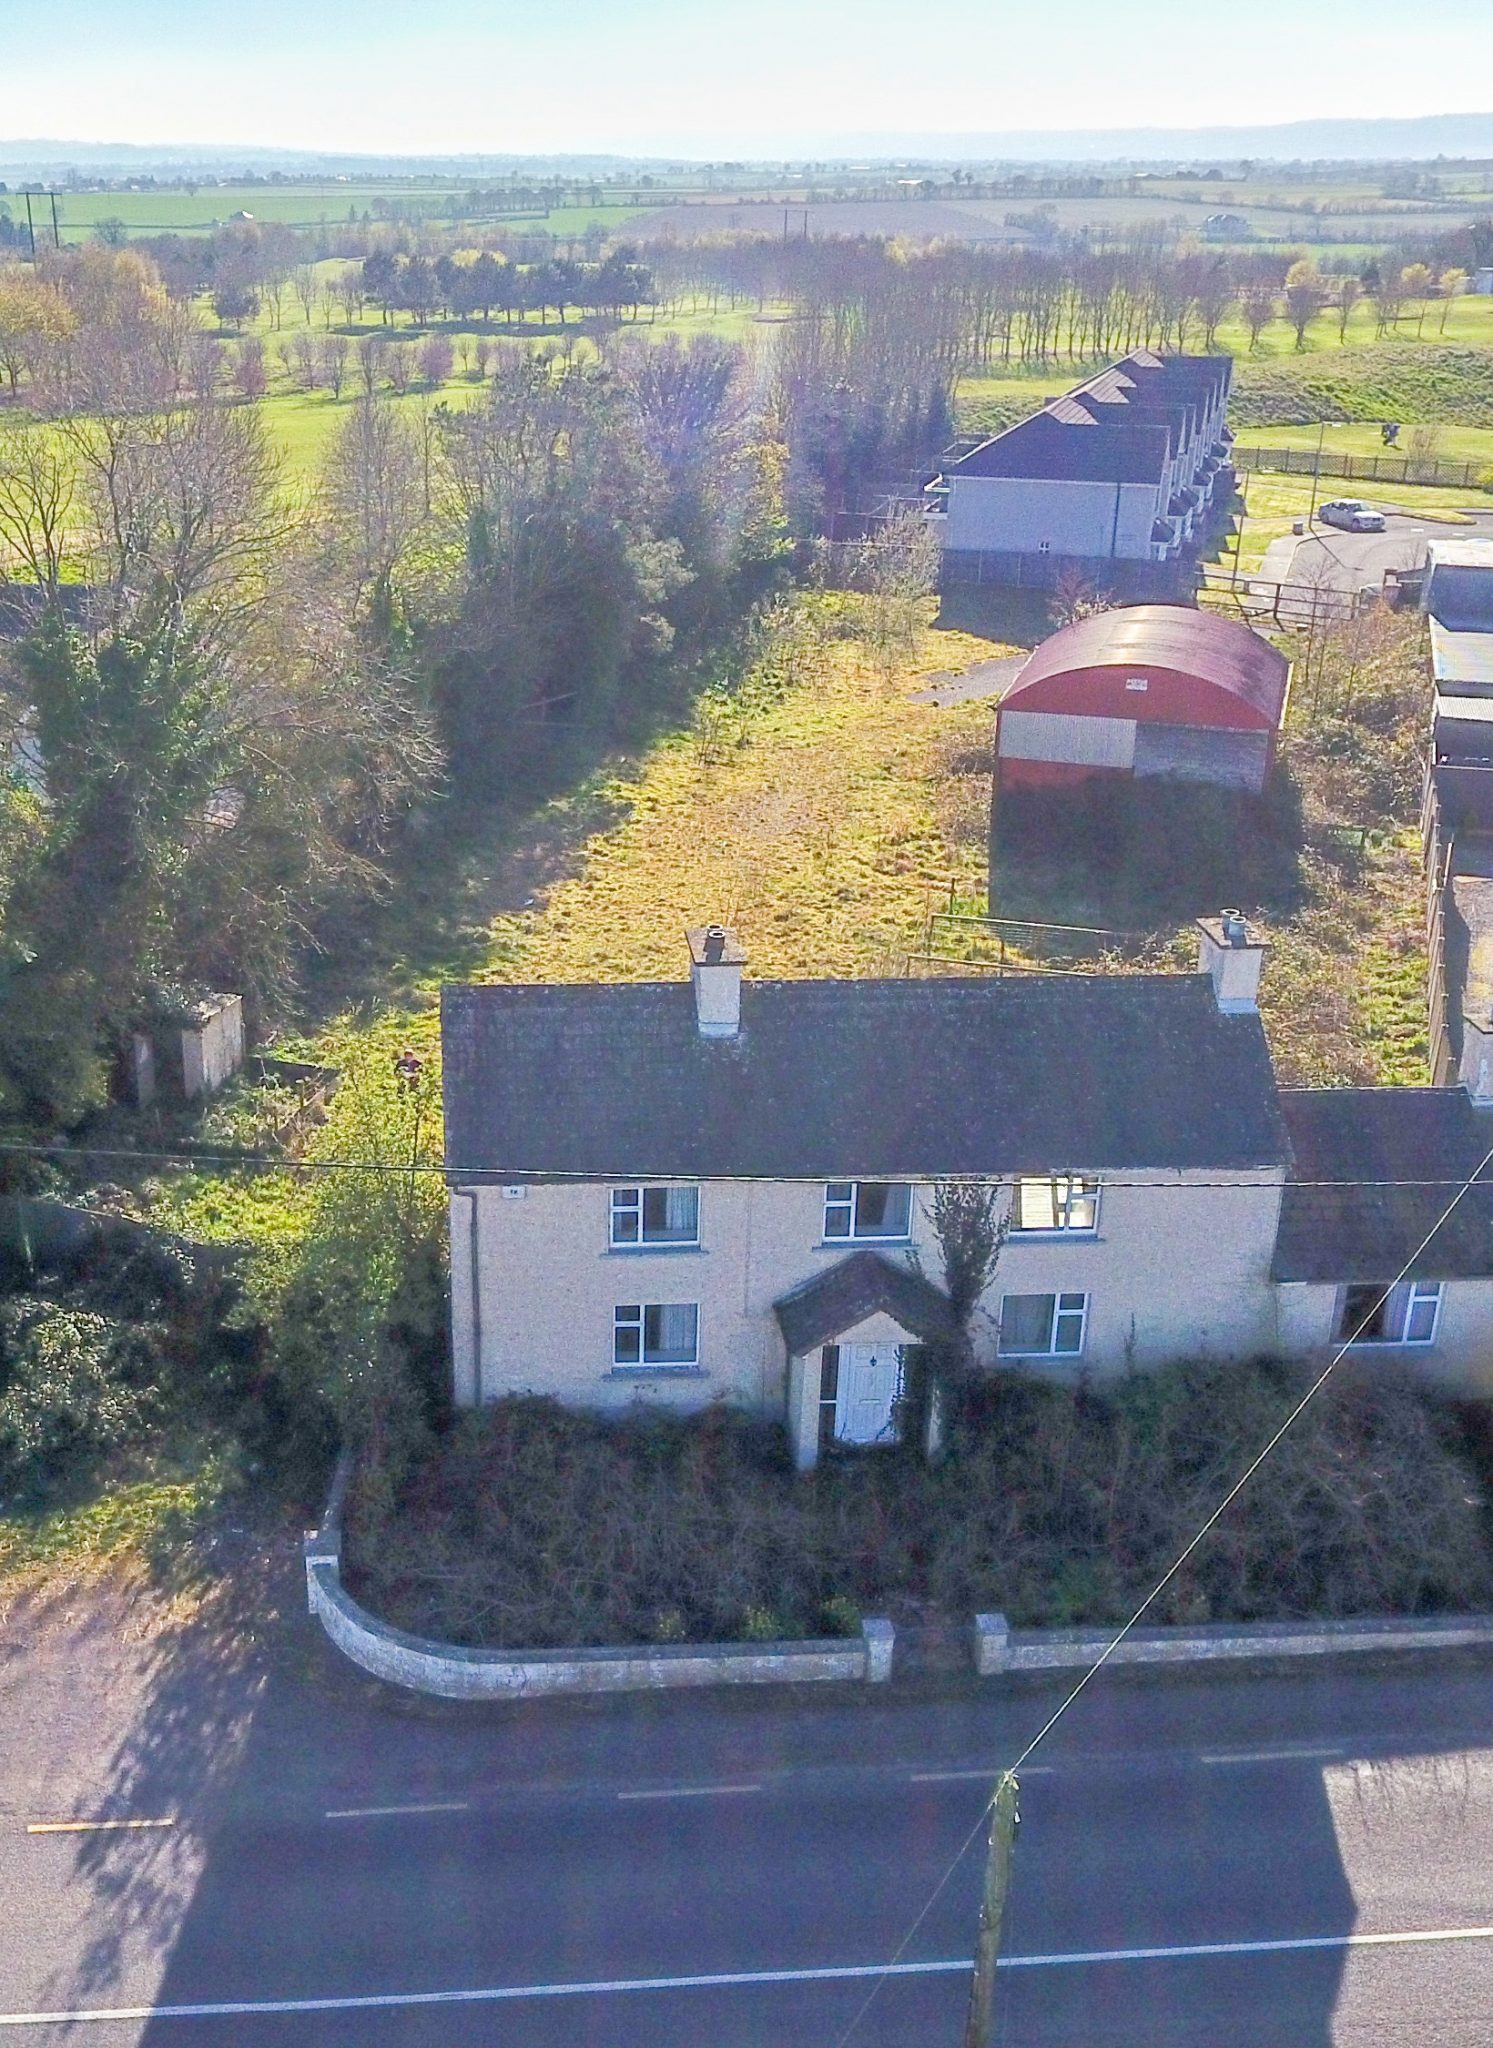 Killerig Farmhouse & Site, Killerig, Co. Carlow, R93 K652